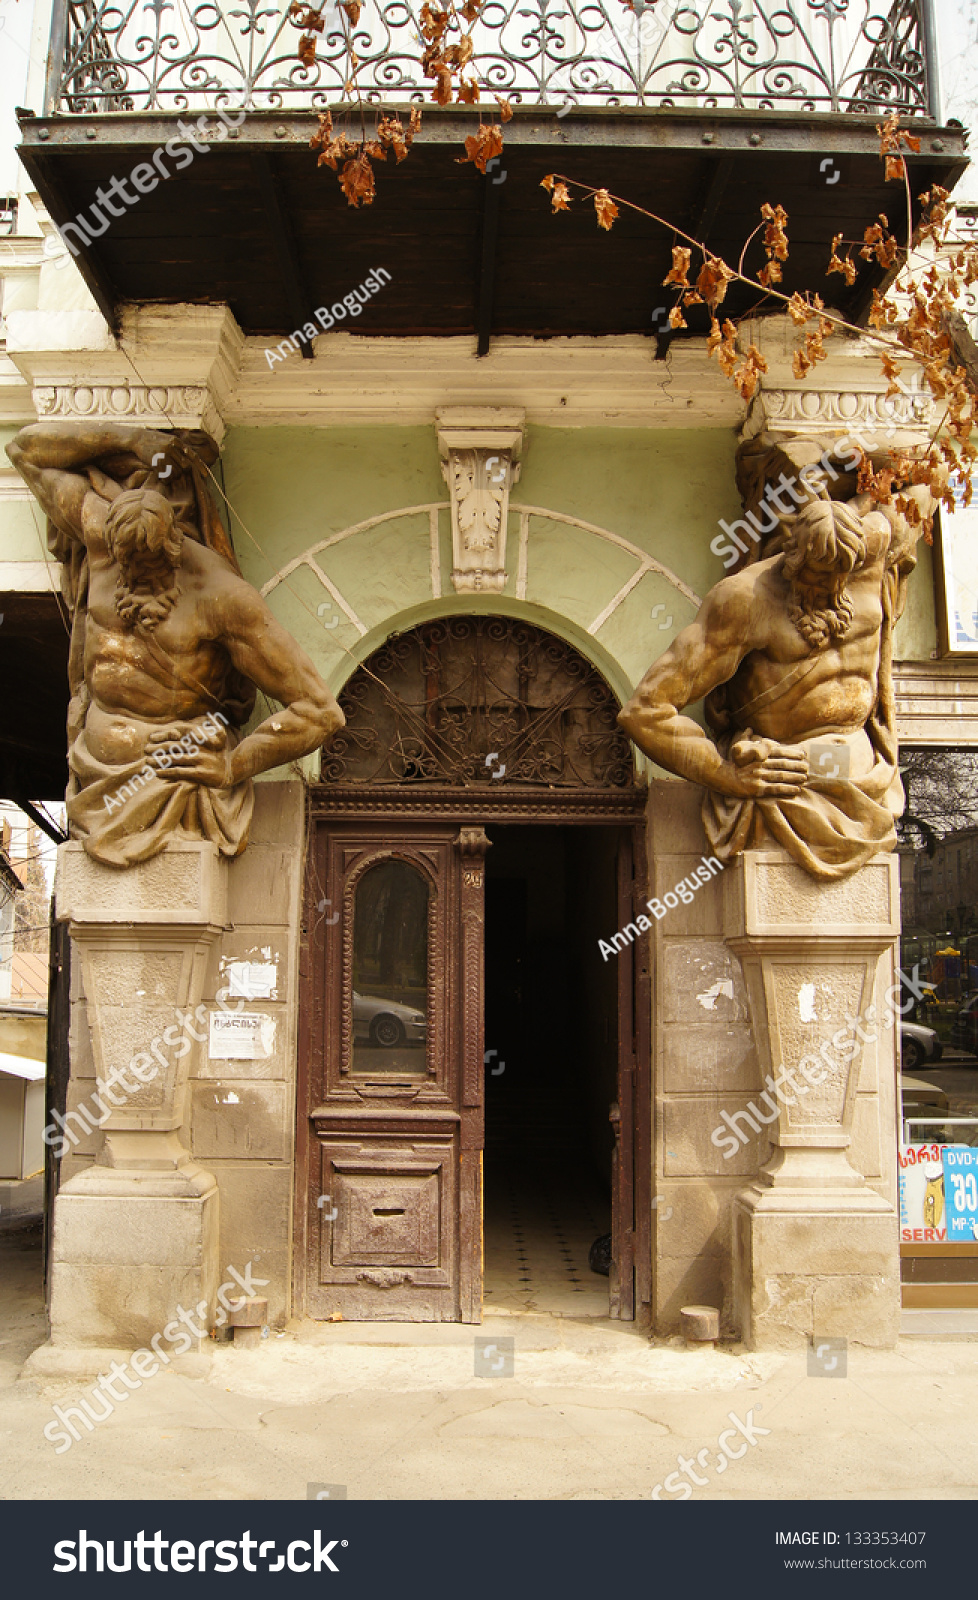 Décoration Art Nouveau Art Nouveau Door Decoration Forged Iron Tbilisi Stock Photo Edit